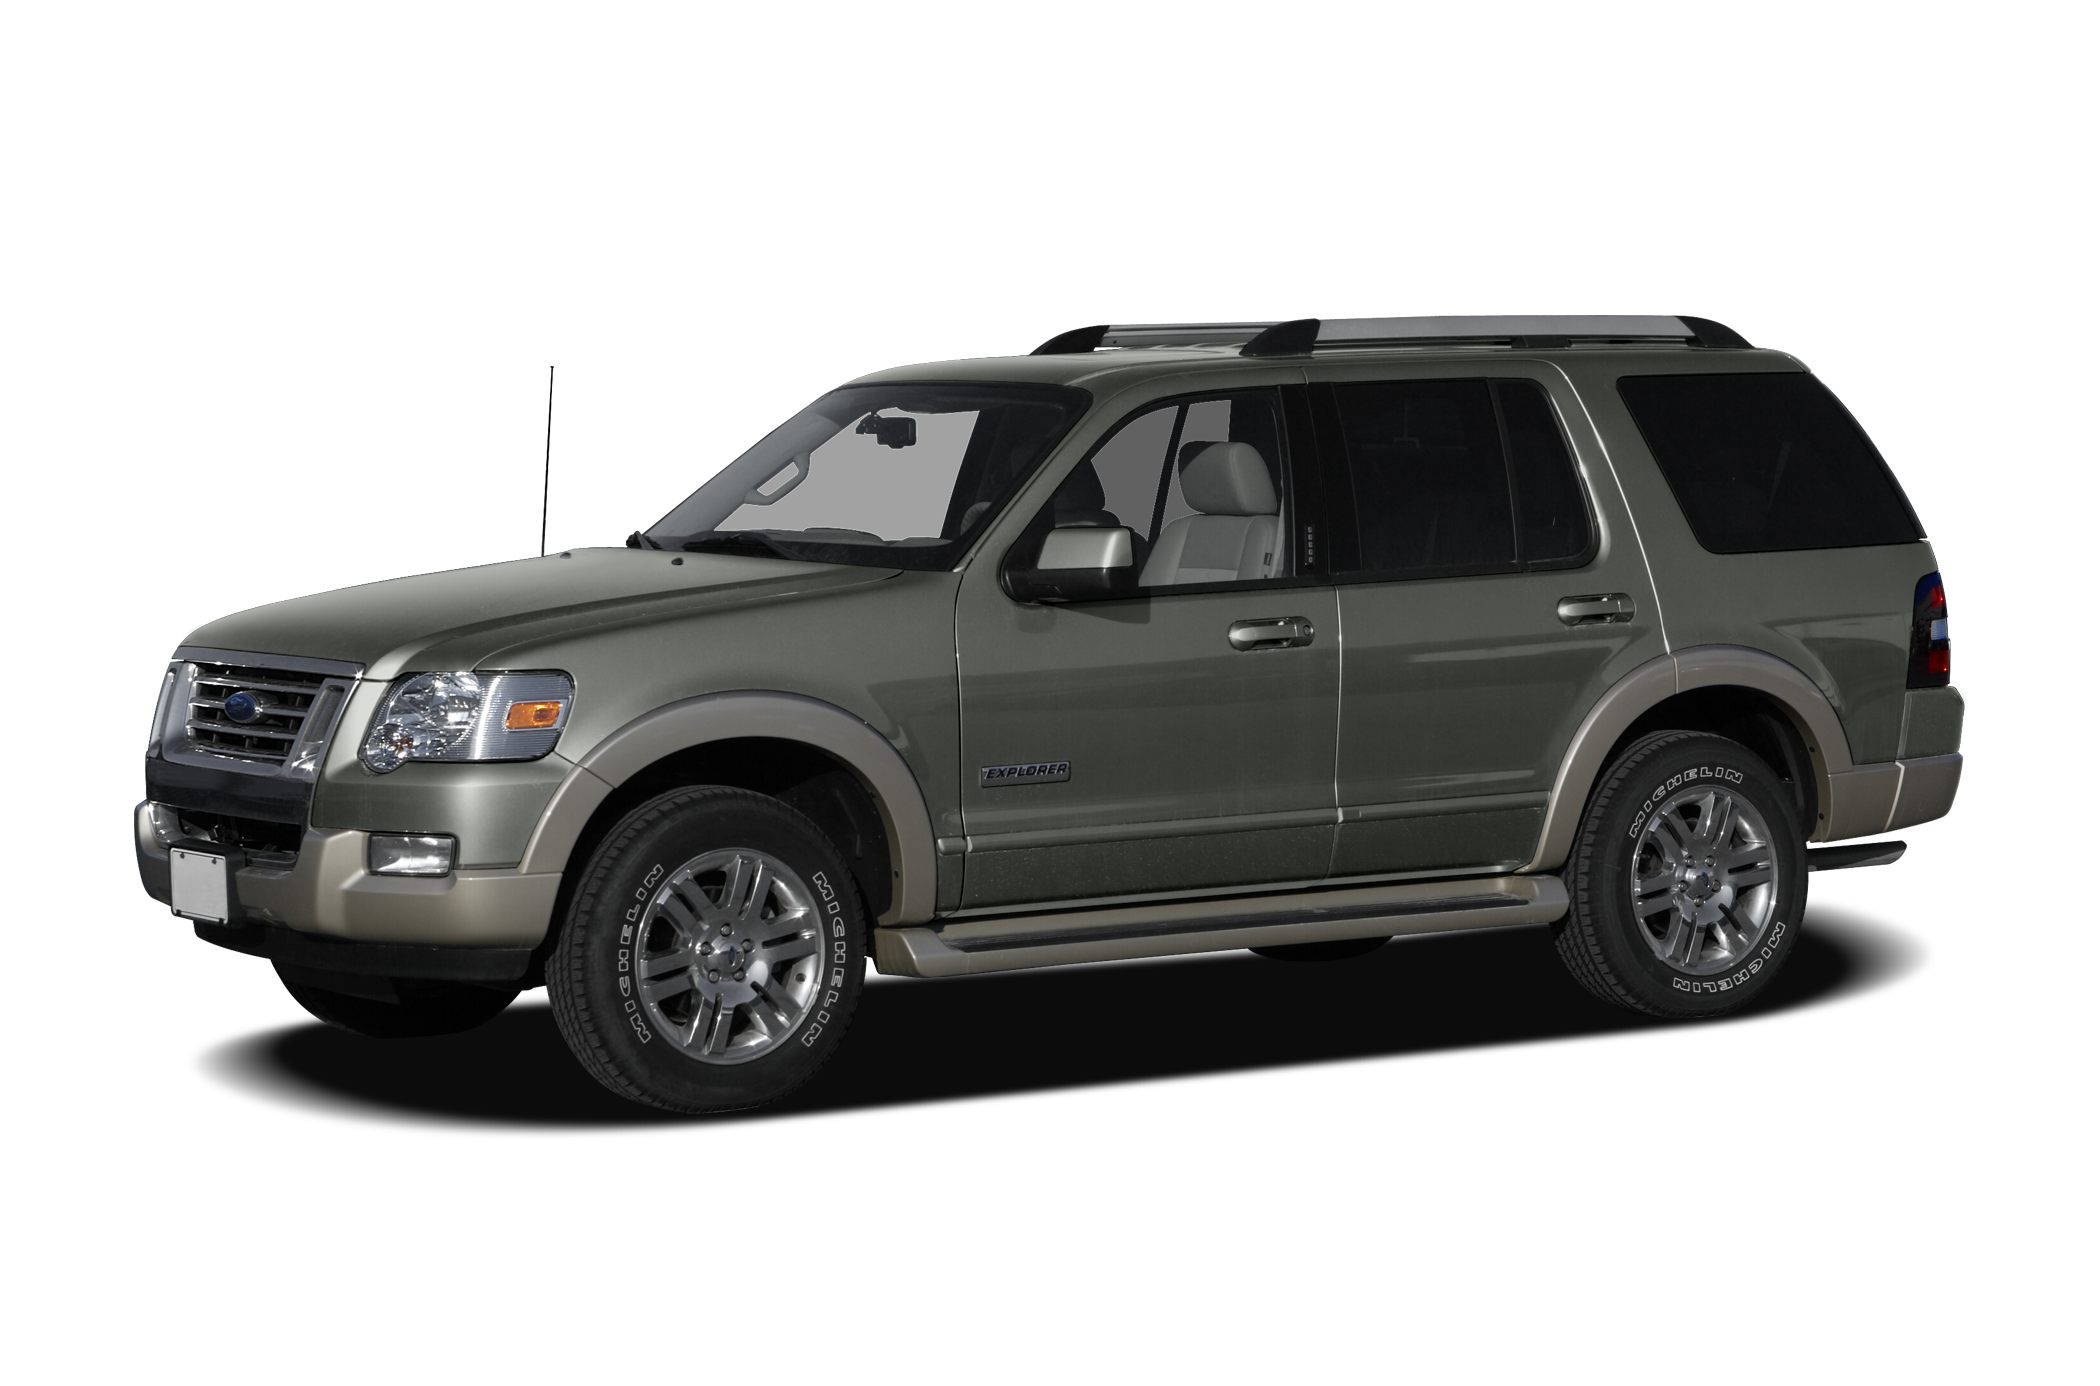 2007 ford explorer eddie bauer features